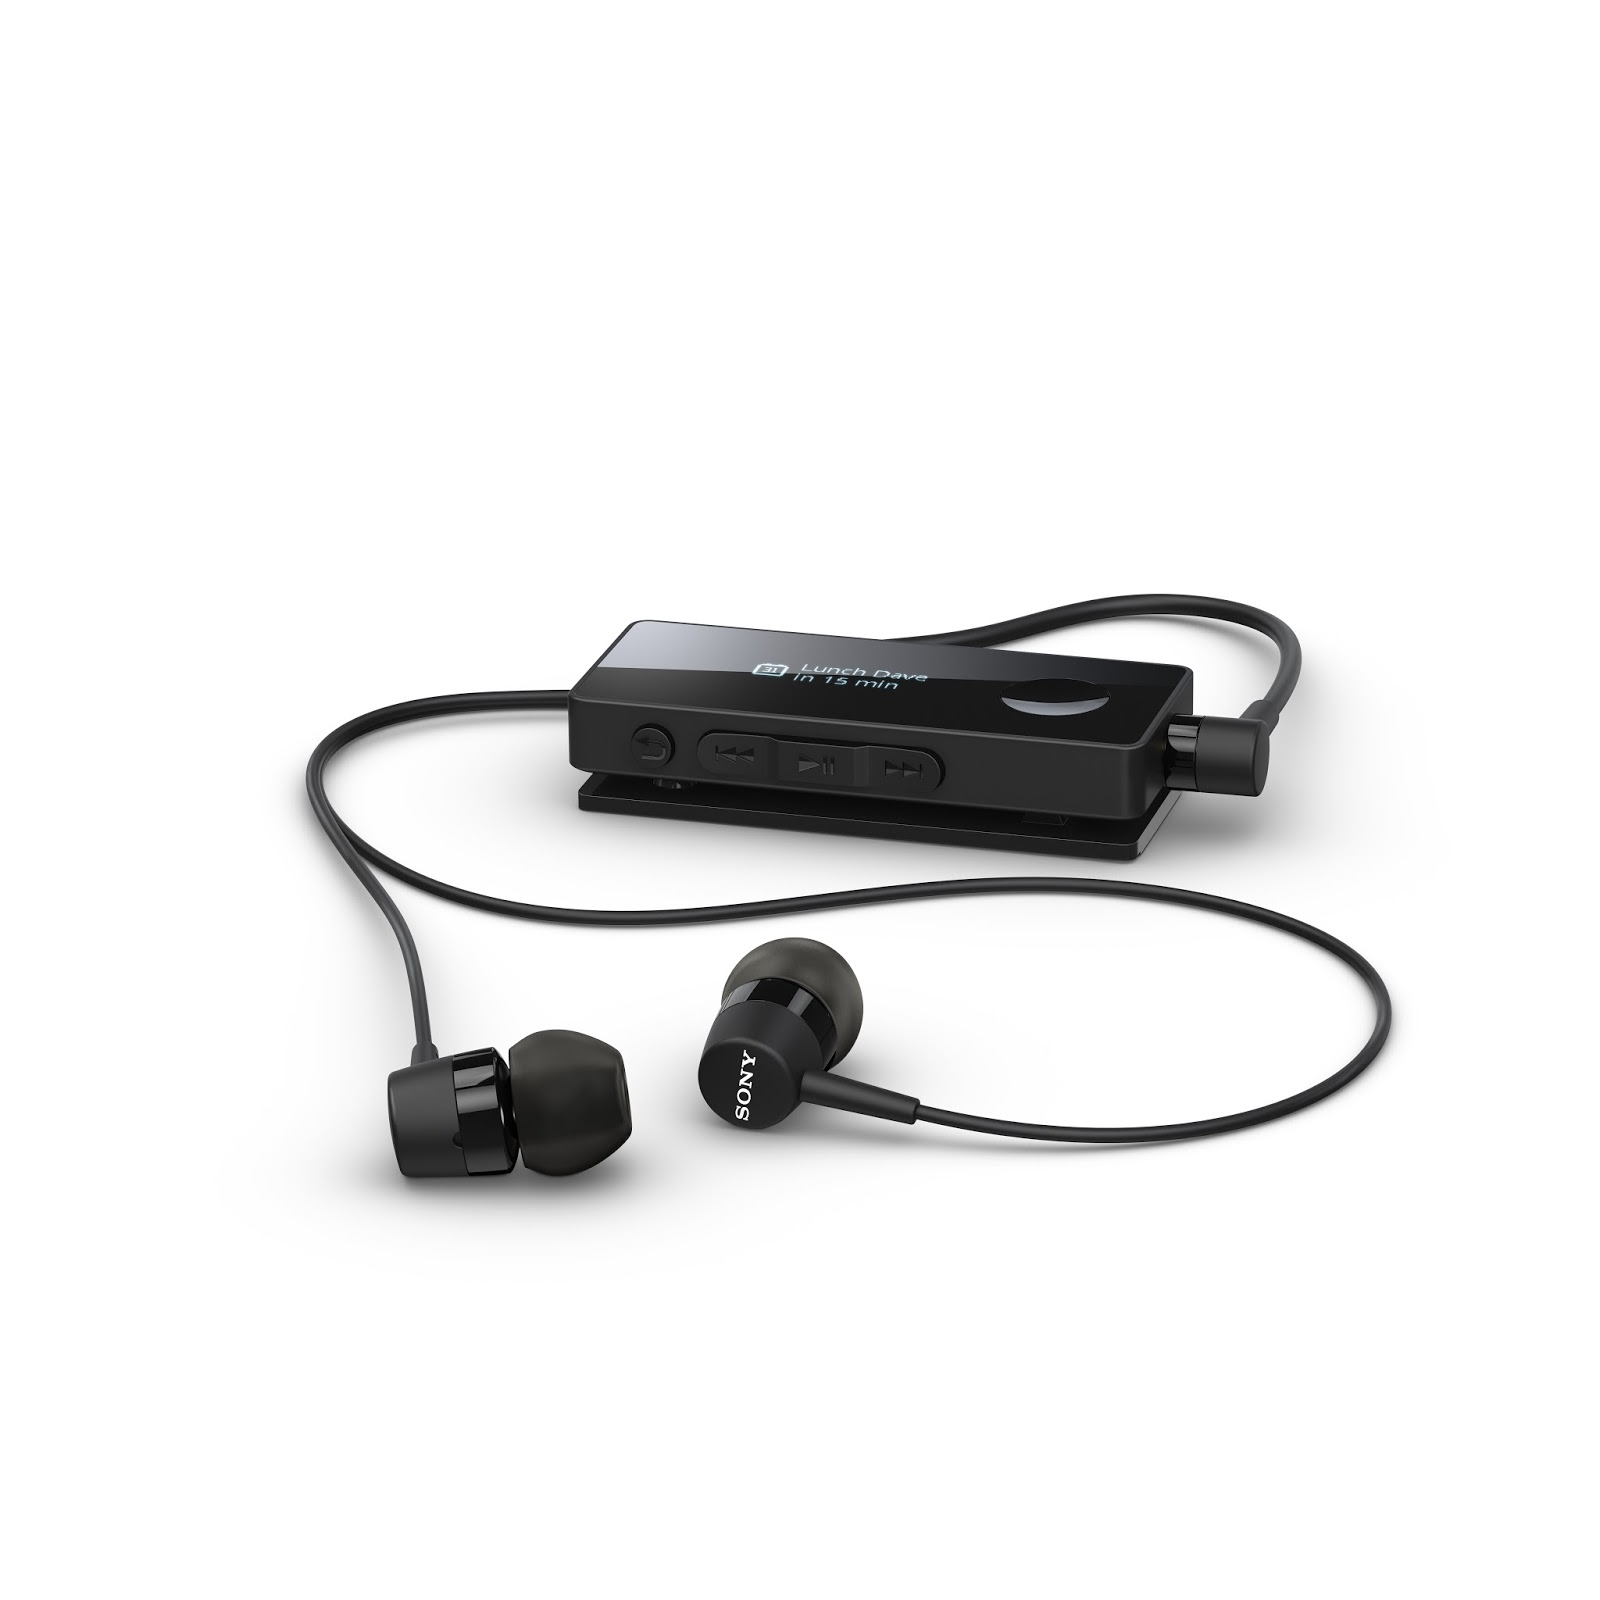 Sony SBH50 Bluetooth Headset Review